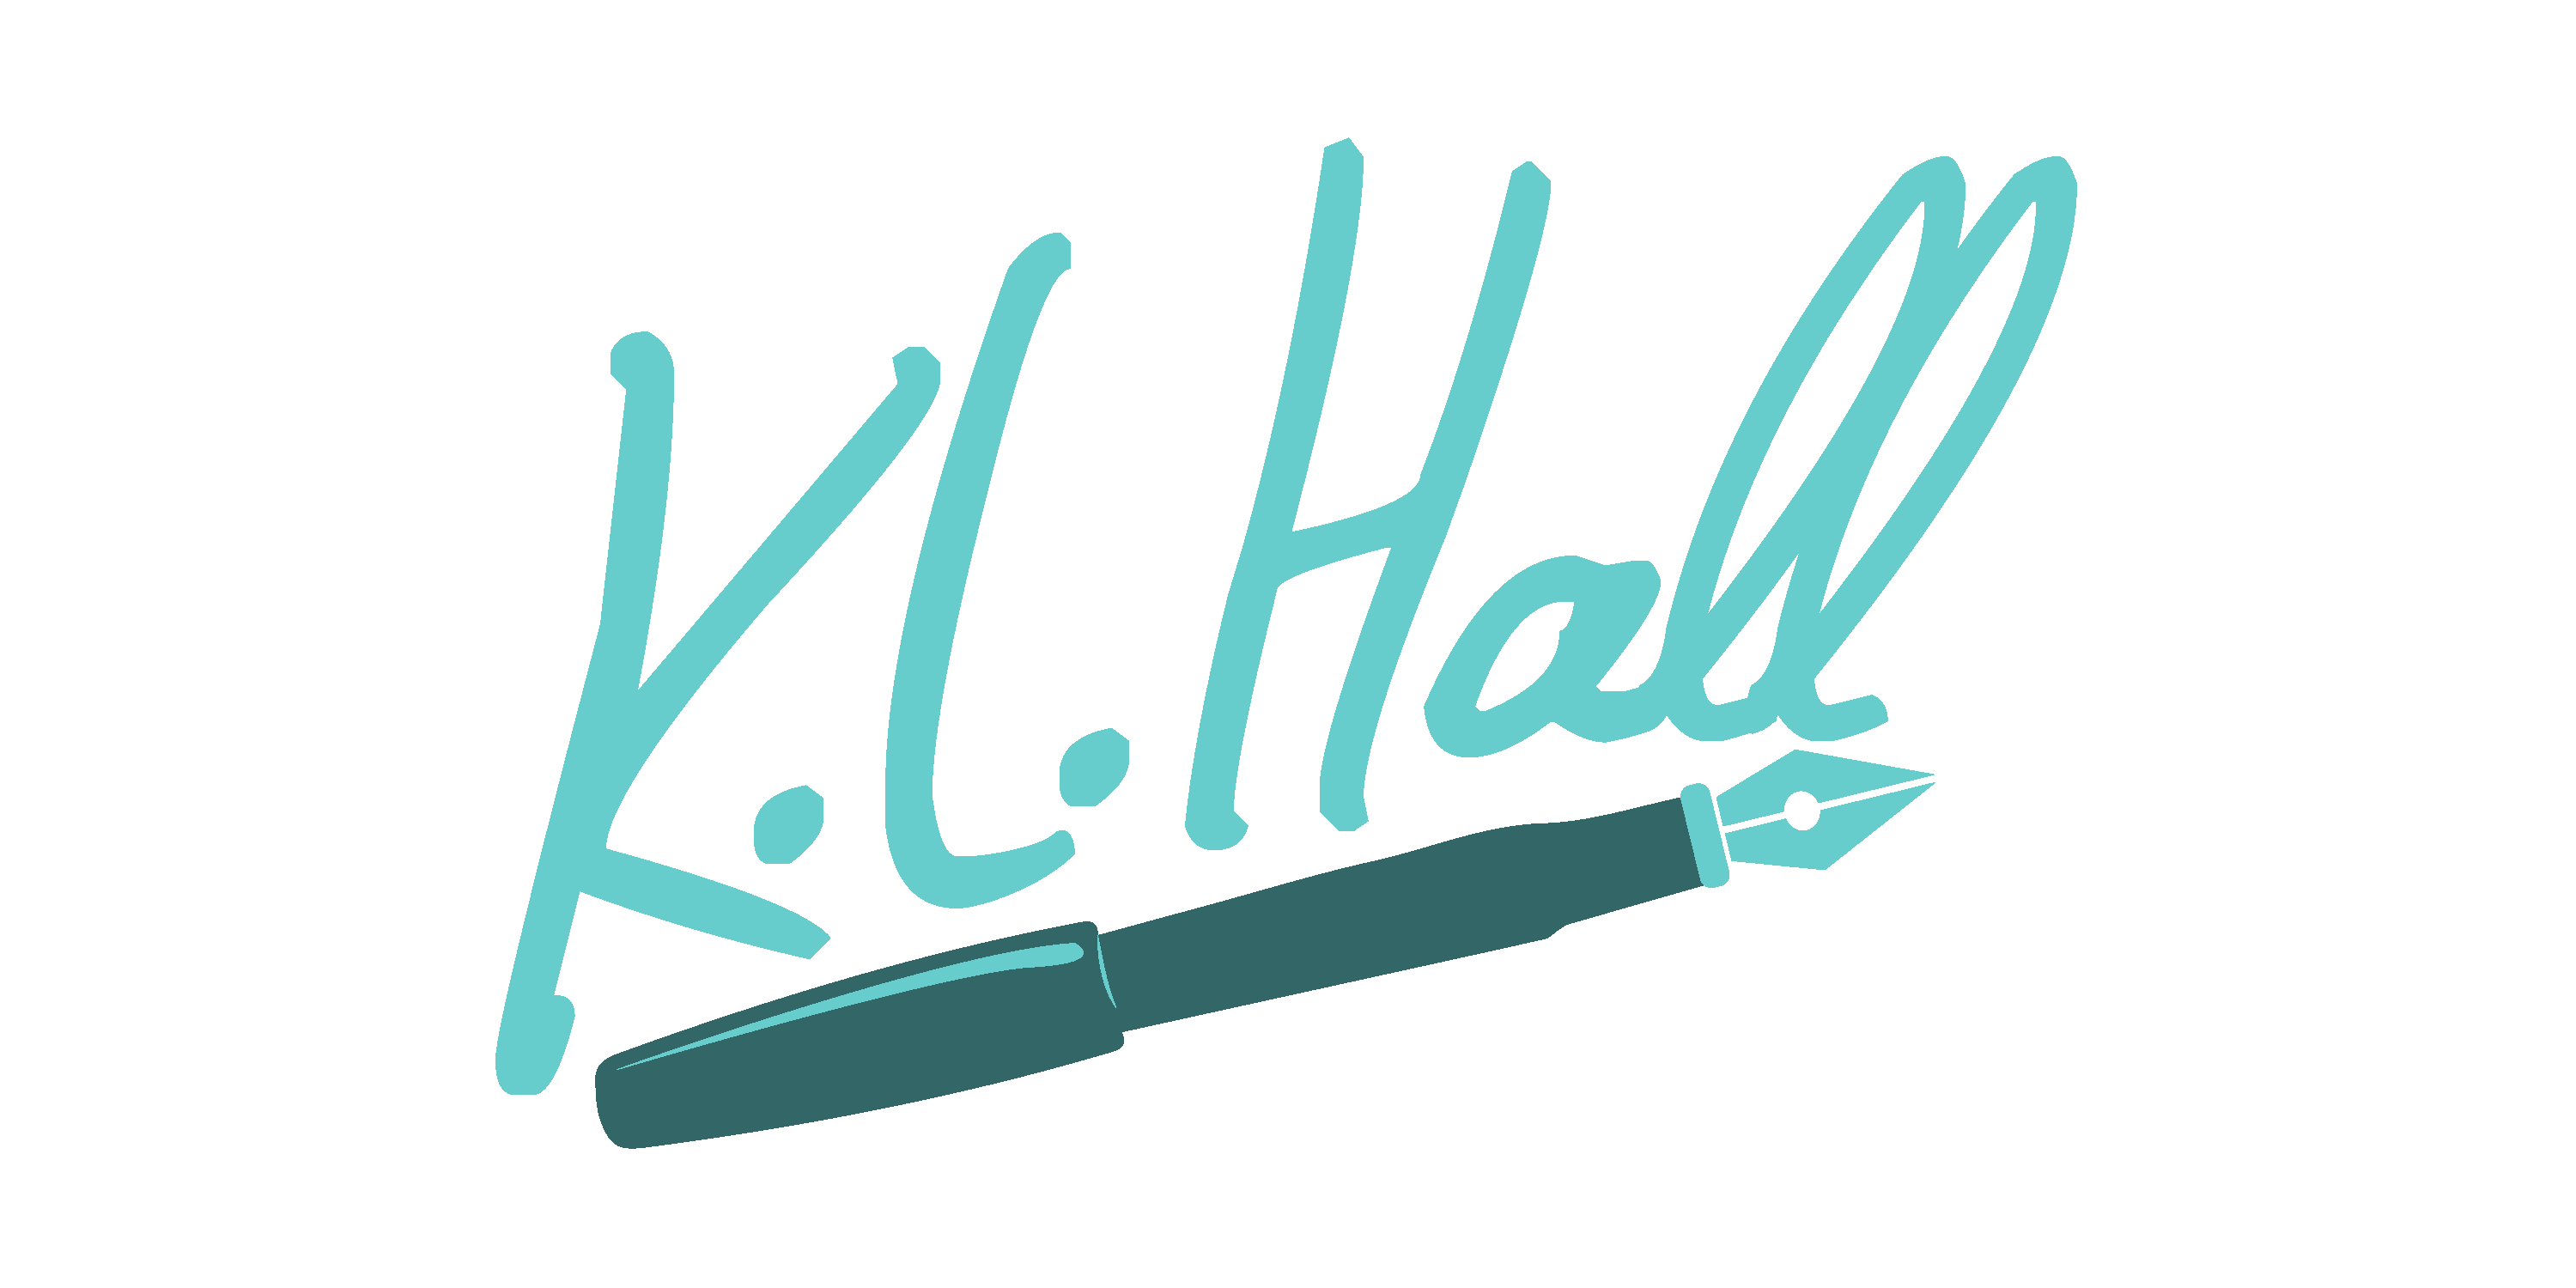 K.L. Hall Text Logo with Pen